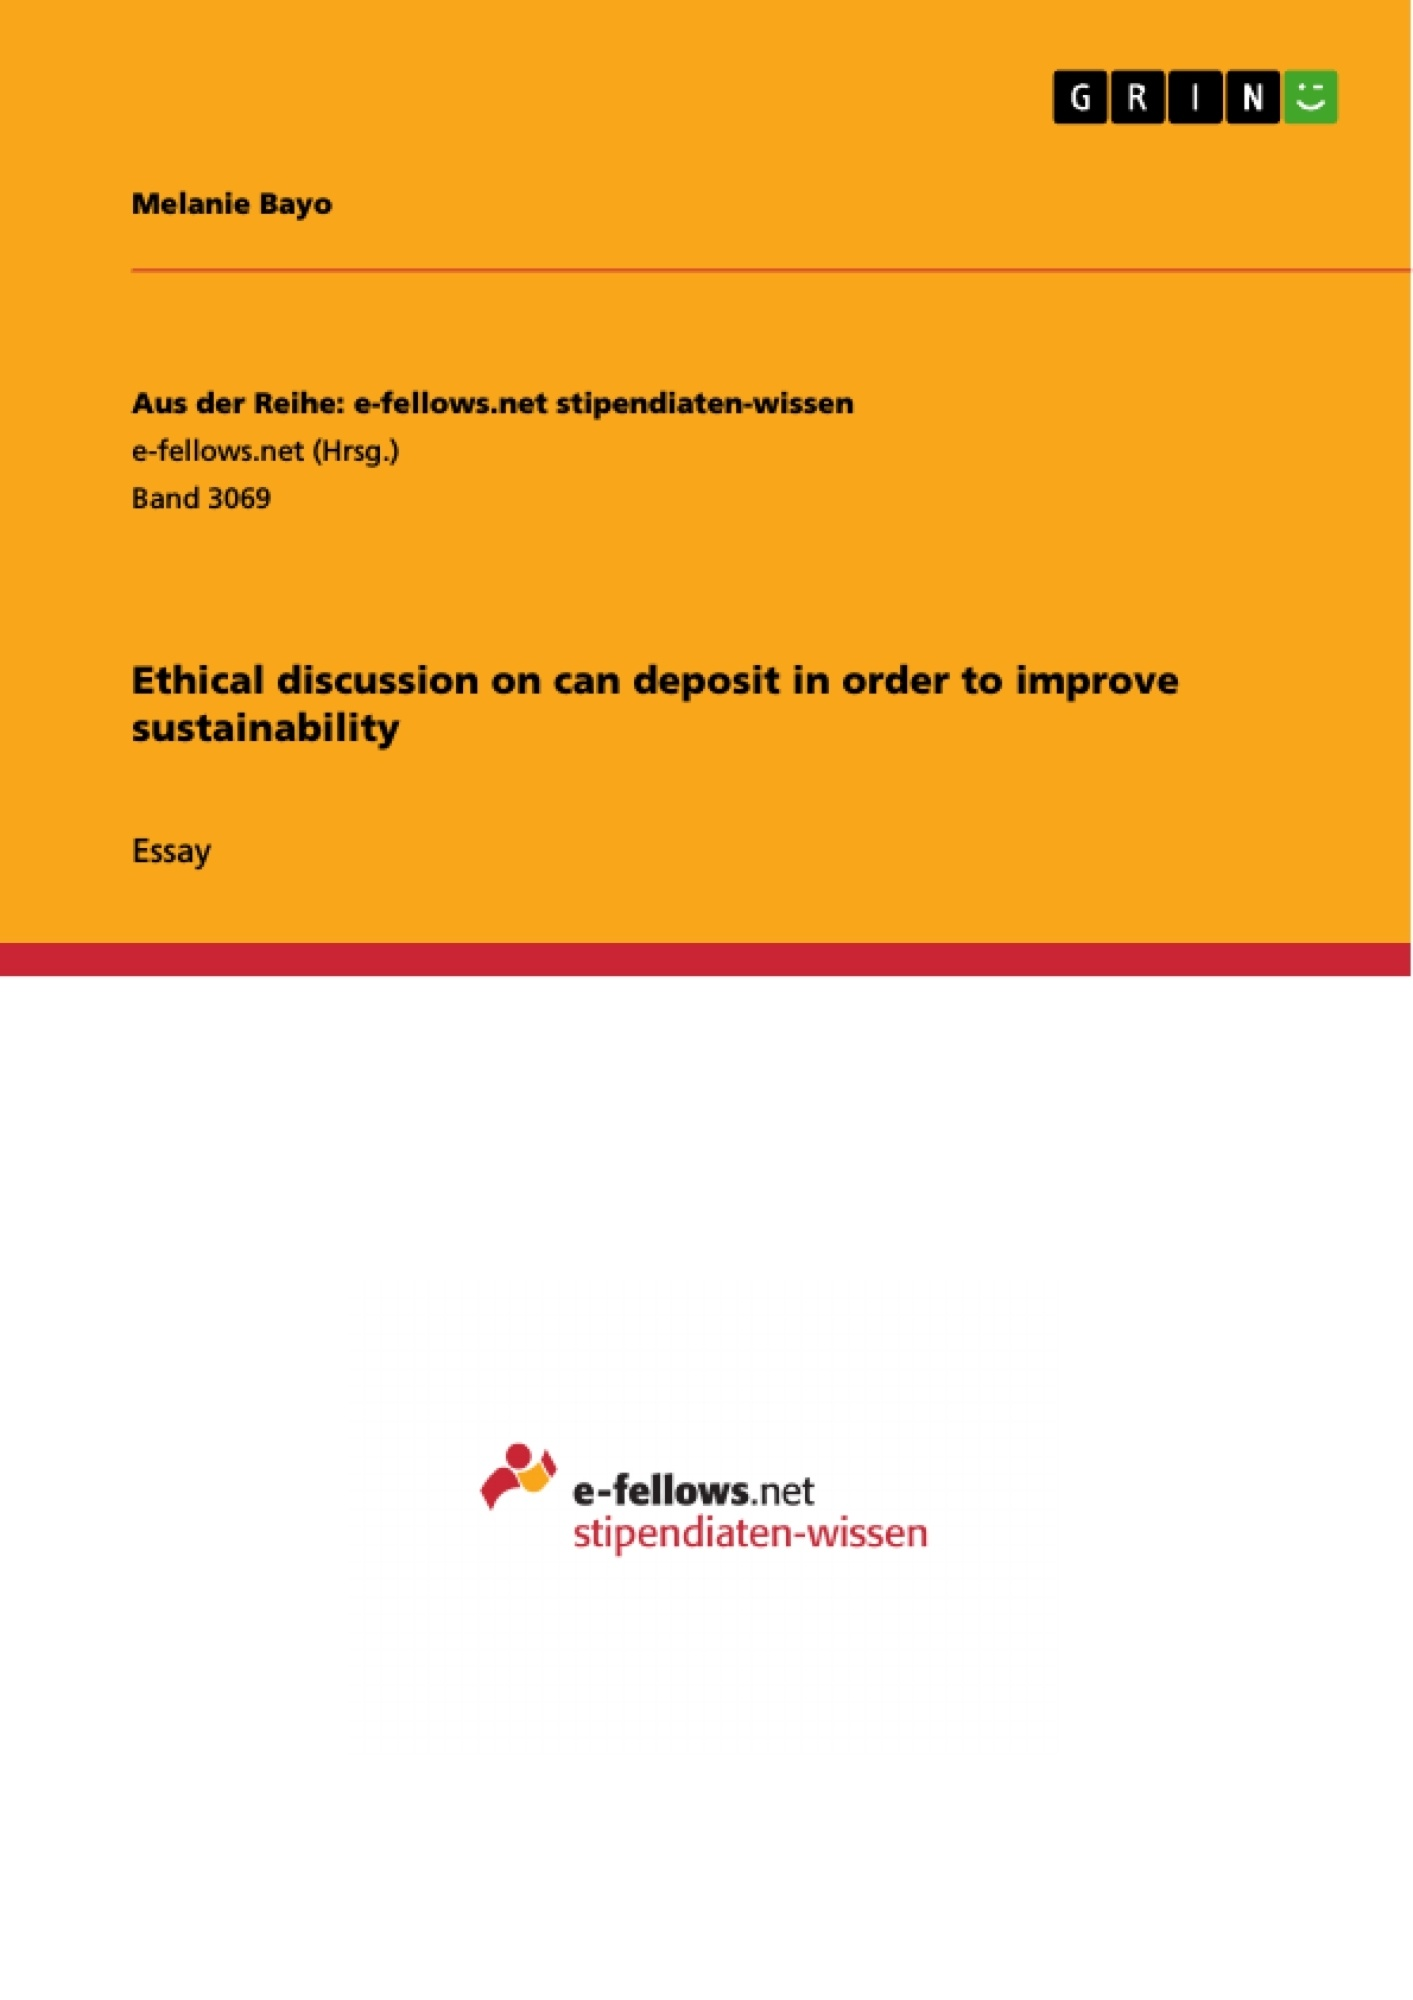 Title: Ethical discussion on can deposit in order to improve sustainability